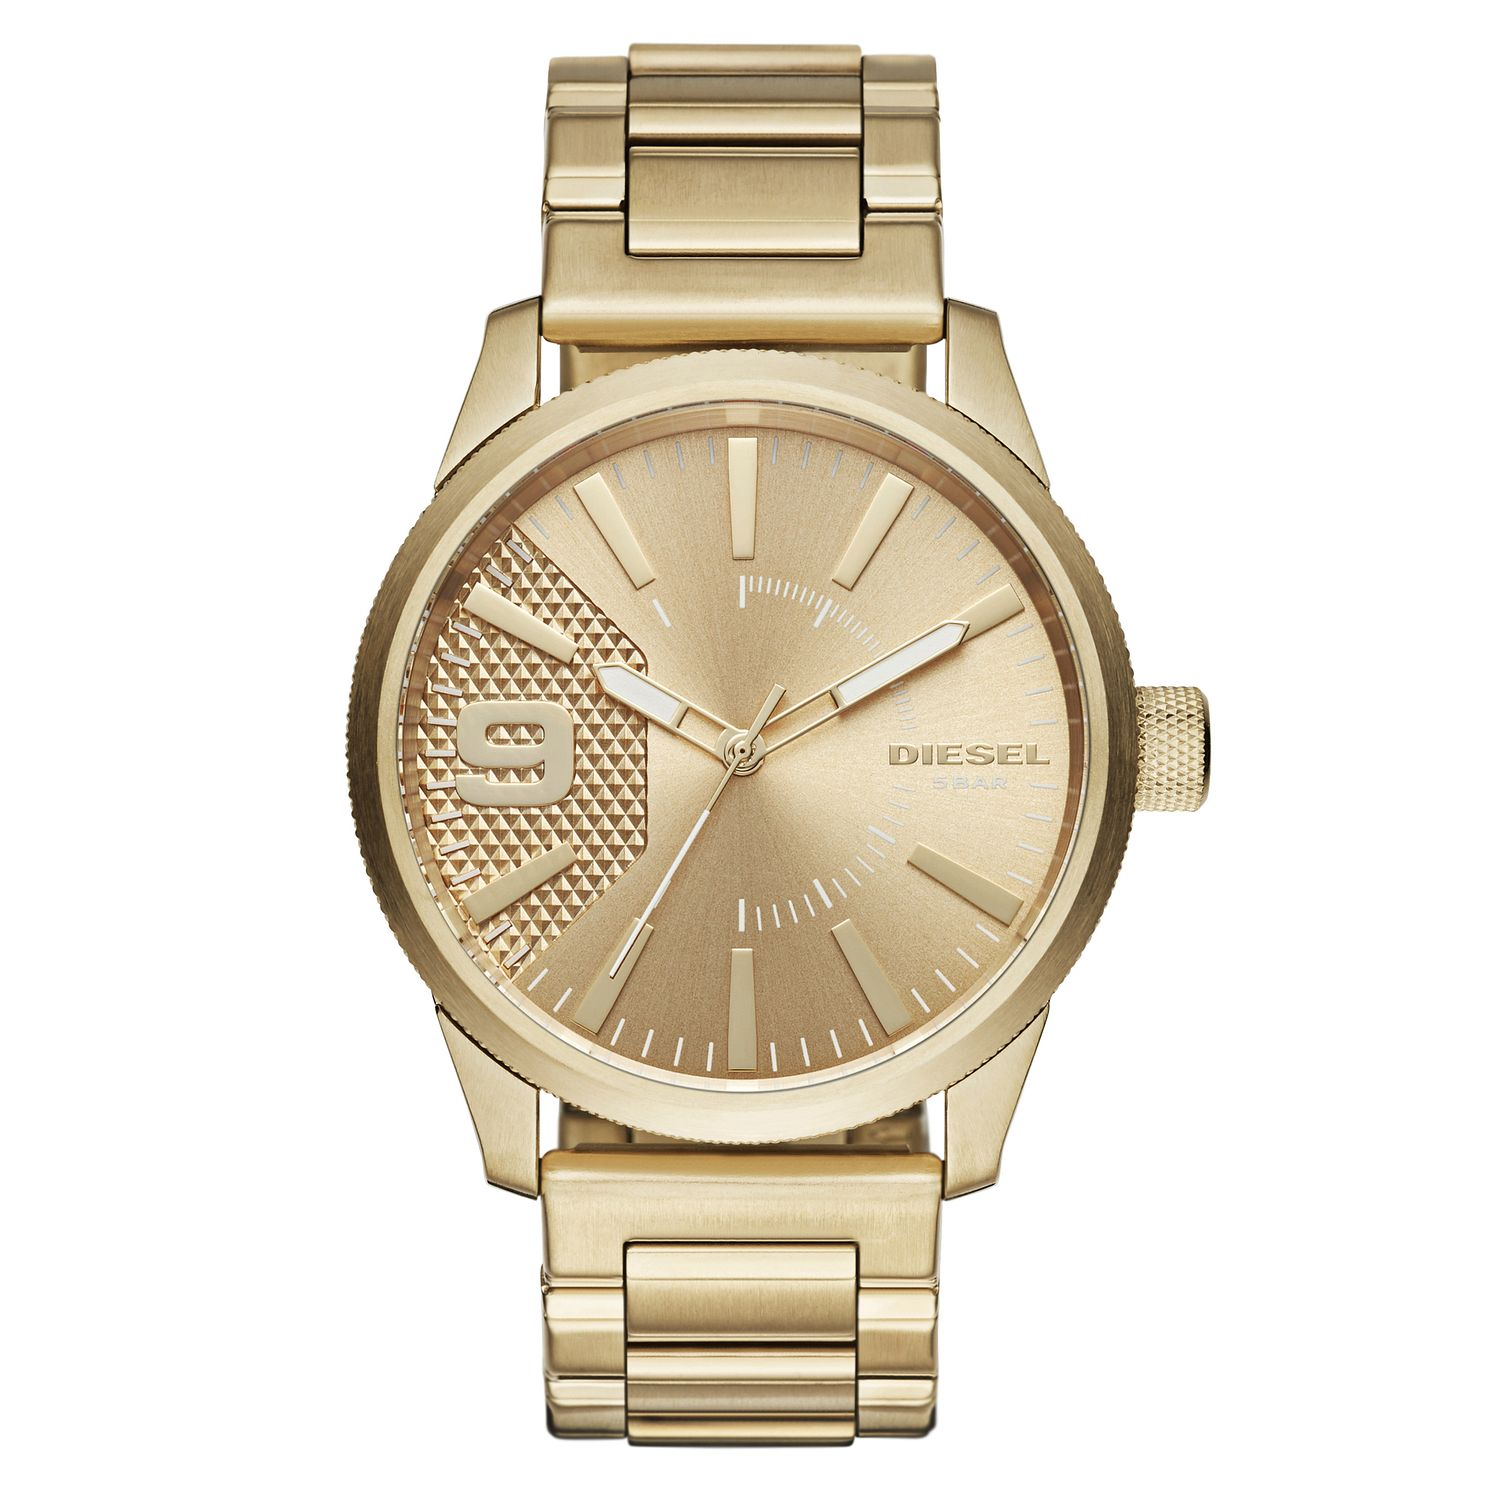 Diesel Men's Gold-Plated Stainless Steel Bracelet Watch - Product number 6253849